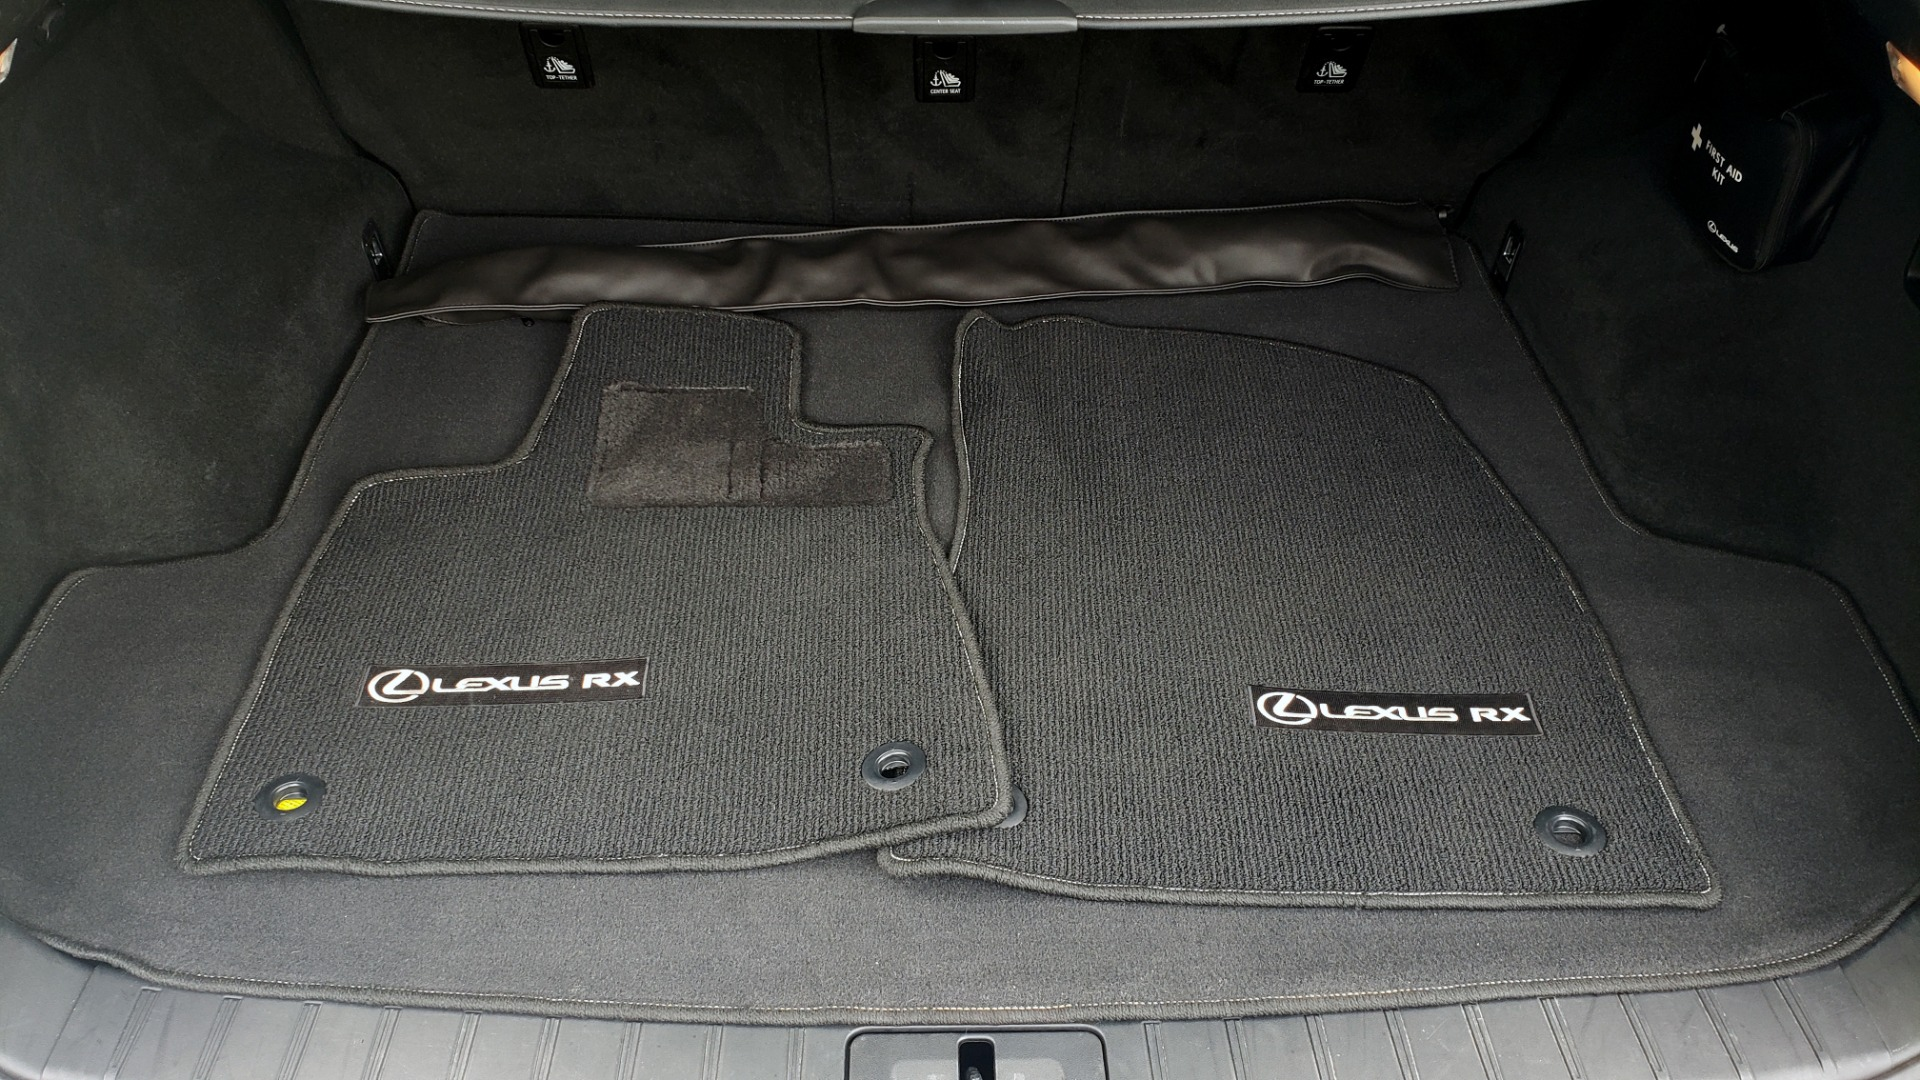 Used 2017 Lexus RX 350 PREMIUM / BSM / SNRF / VENT SEATS / REARVIEW for sale Sold at Formula Imports in Charlotte NC 28227 17